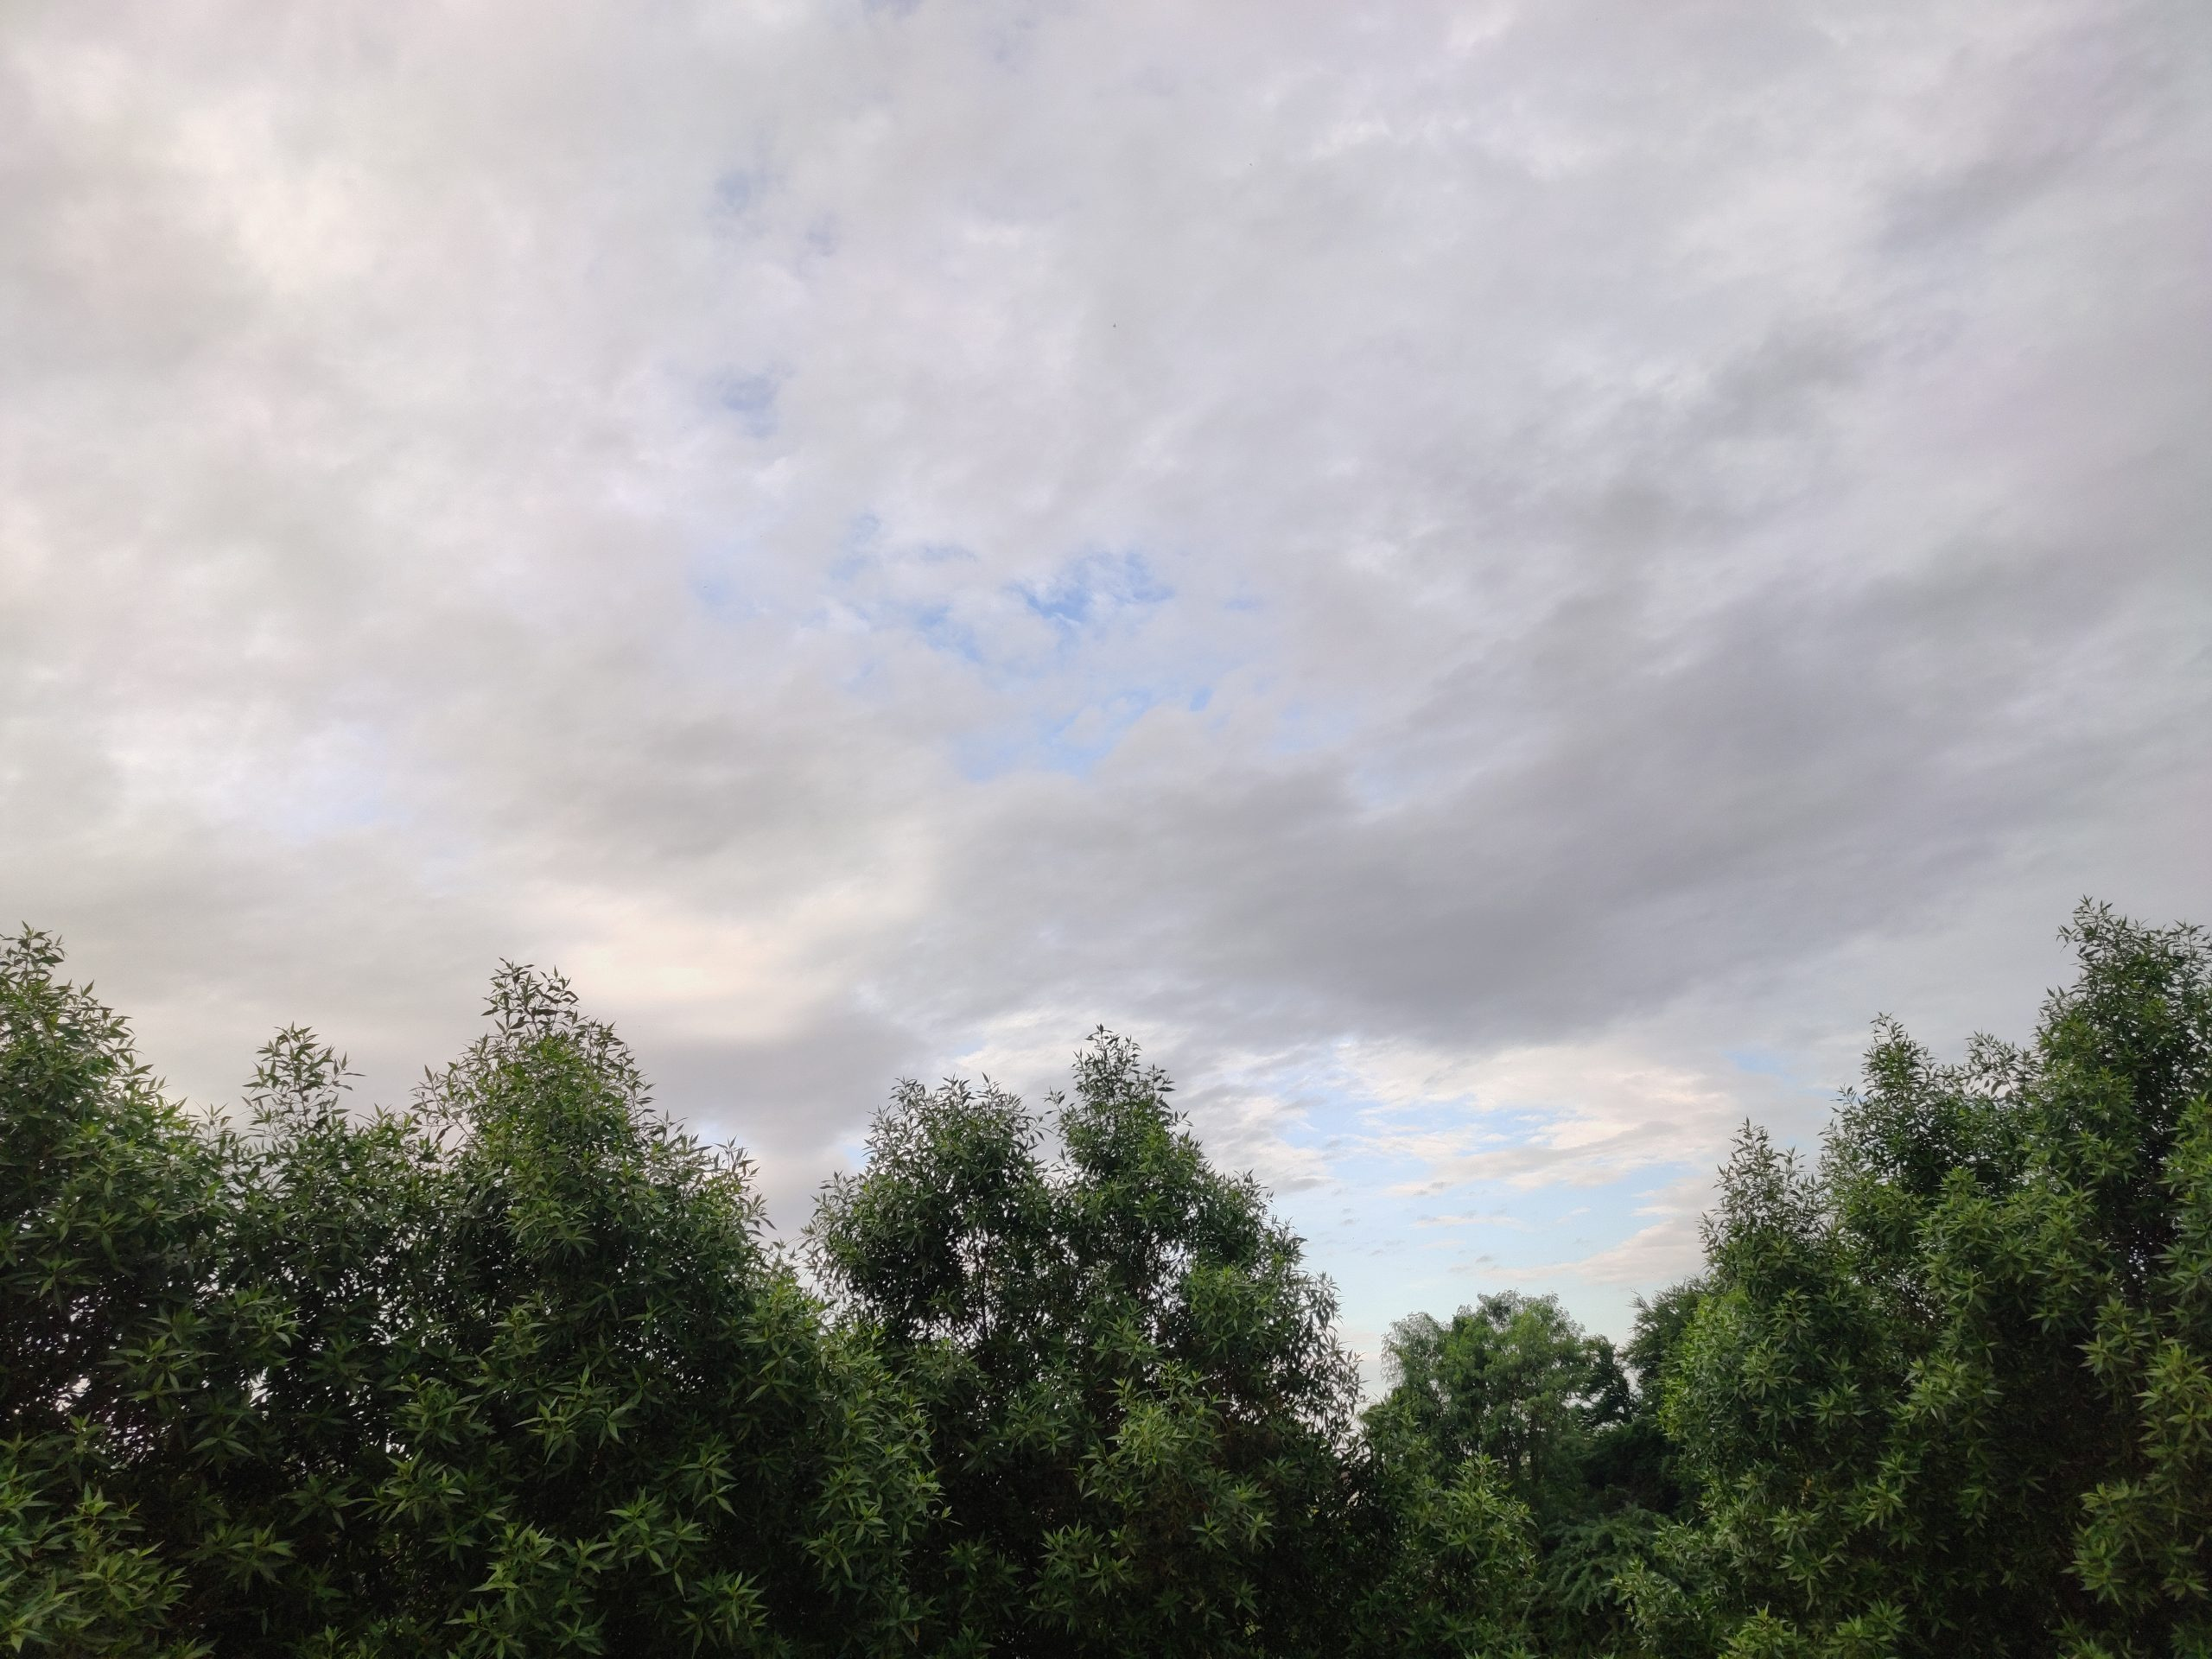 Cloudy sky portraying greenery.